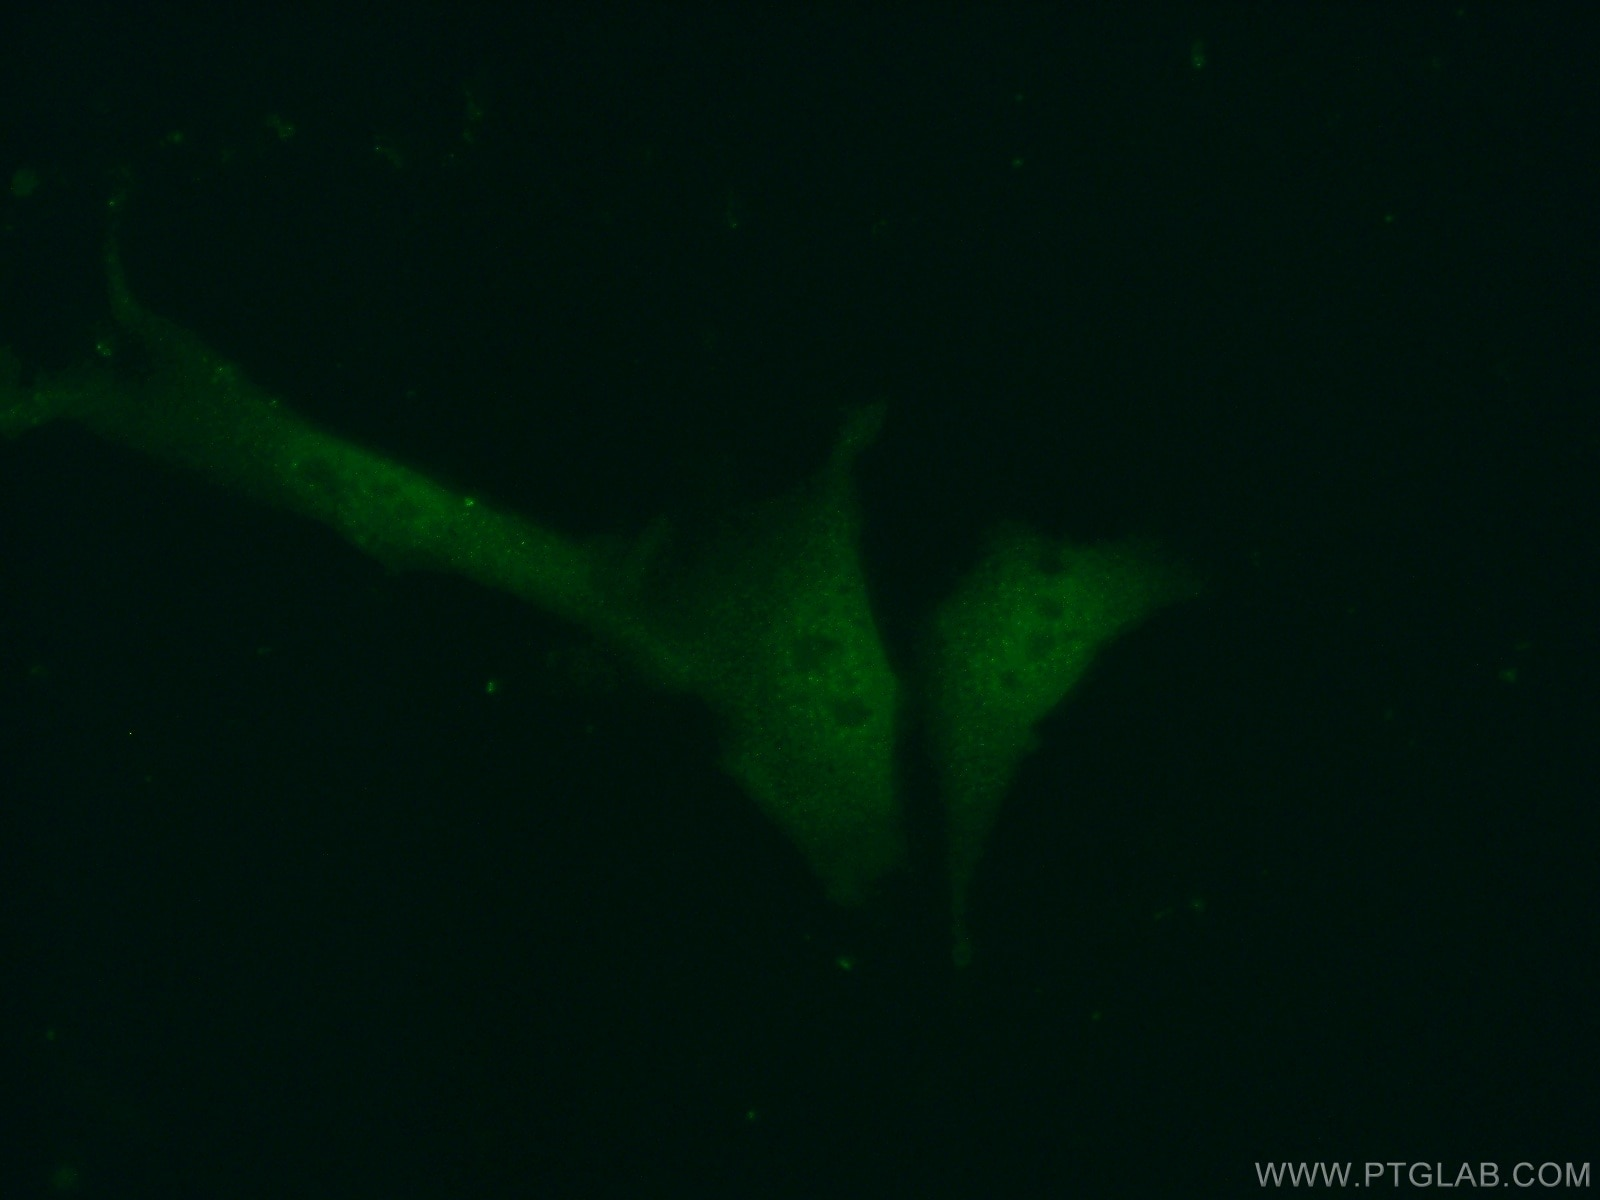 IF Staining of NIH/3T3 using 22259-1-AP